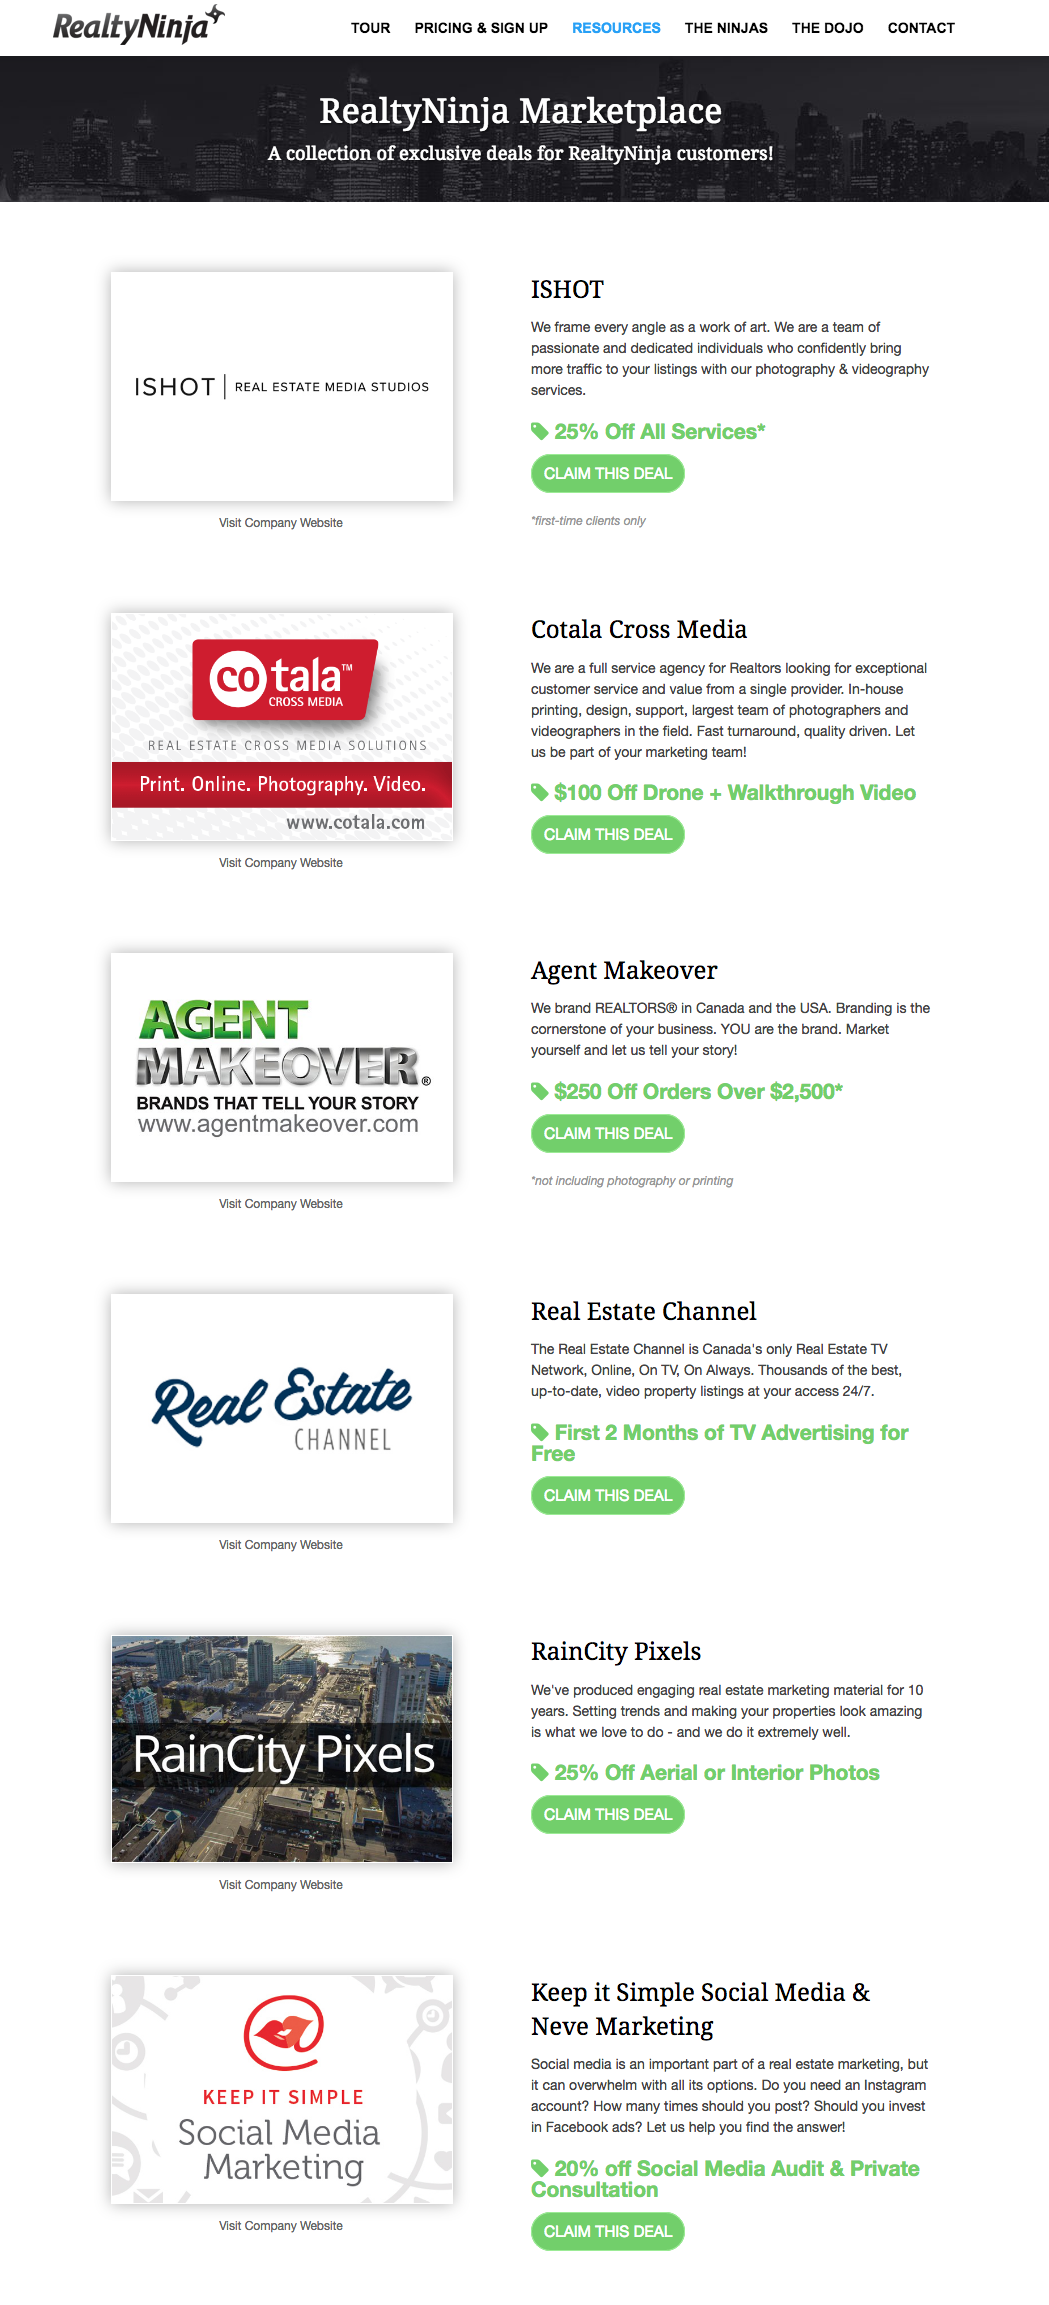 The RealtyNinja Marketplace: Sweet Deals on Stuff REALTORS® Need